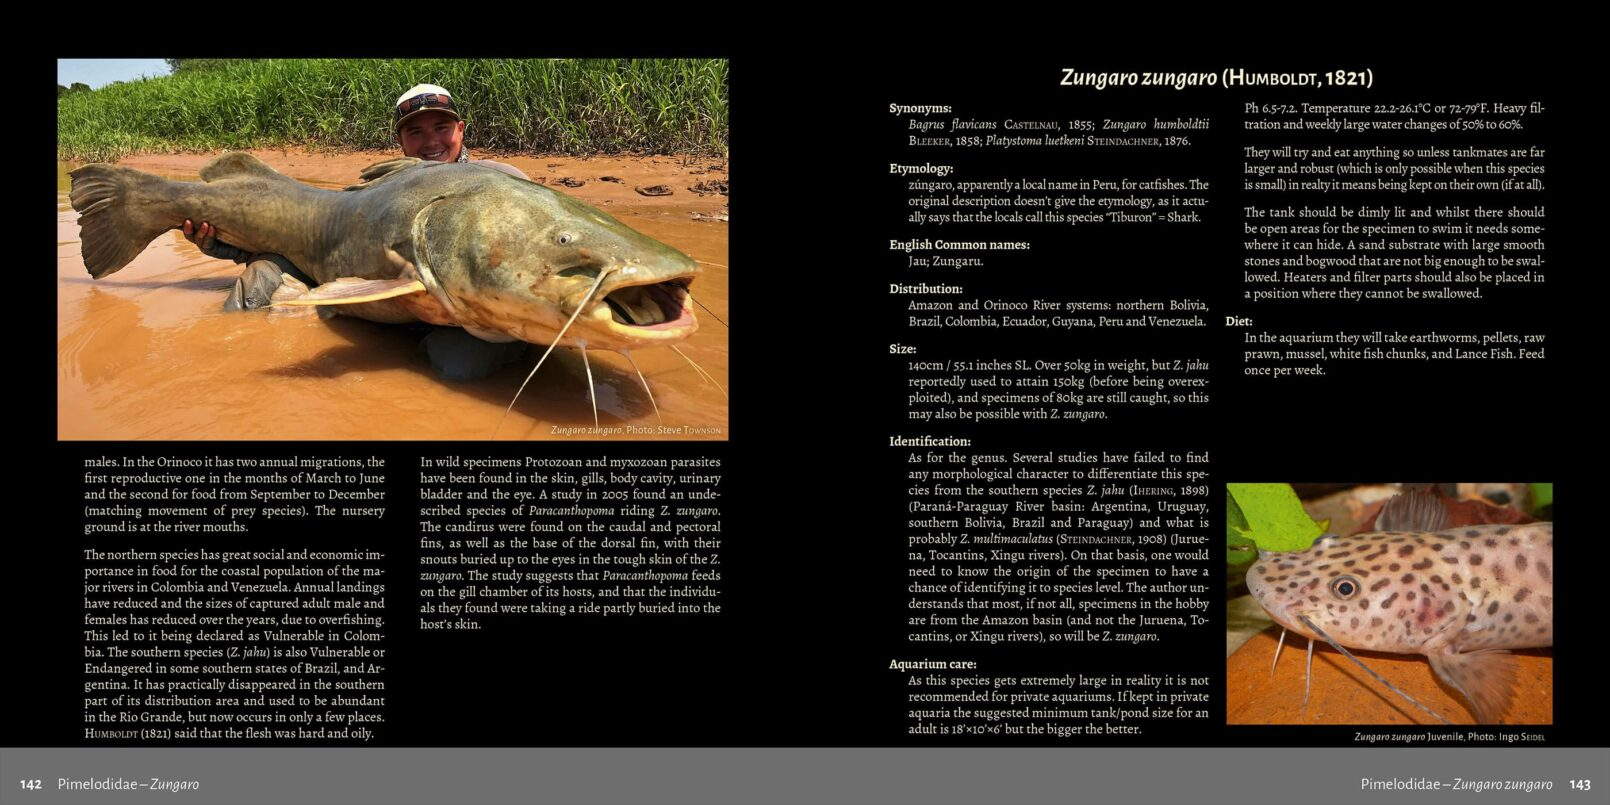 Pims - Pimelodidae, Heptapteridae and Pseudopimelodidae Catfishes / Steven Grant pages 142, 143